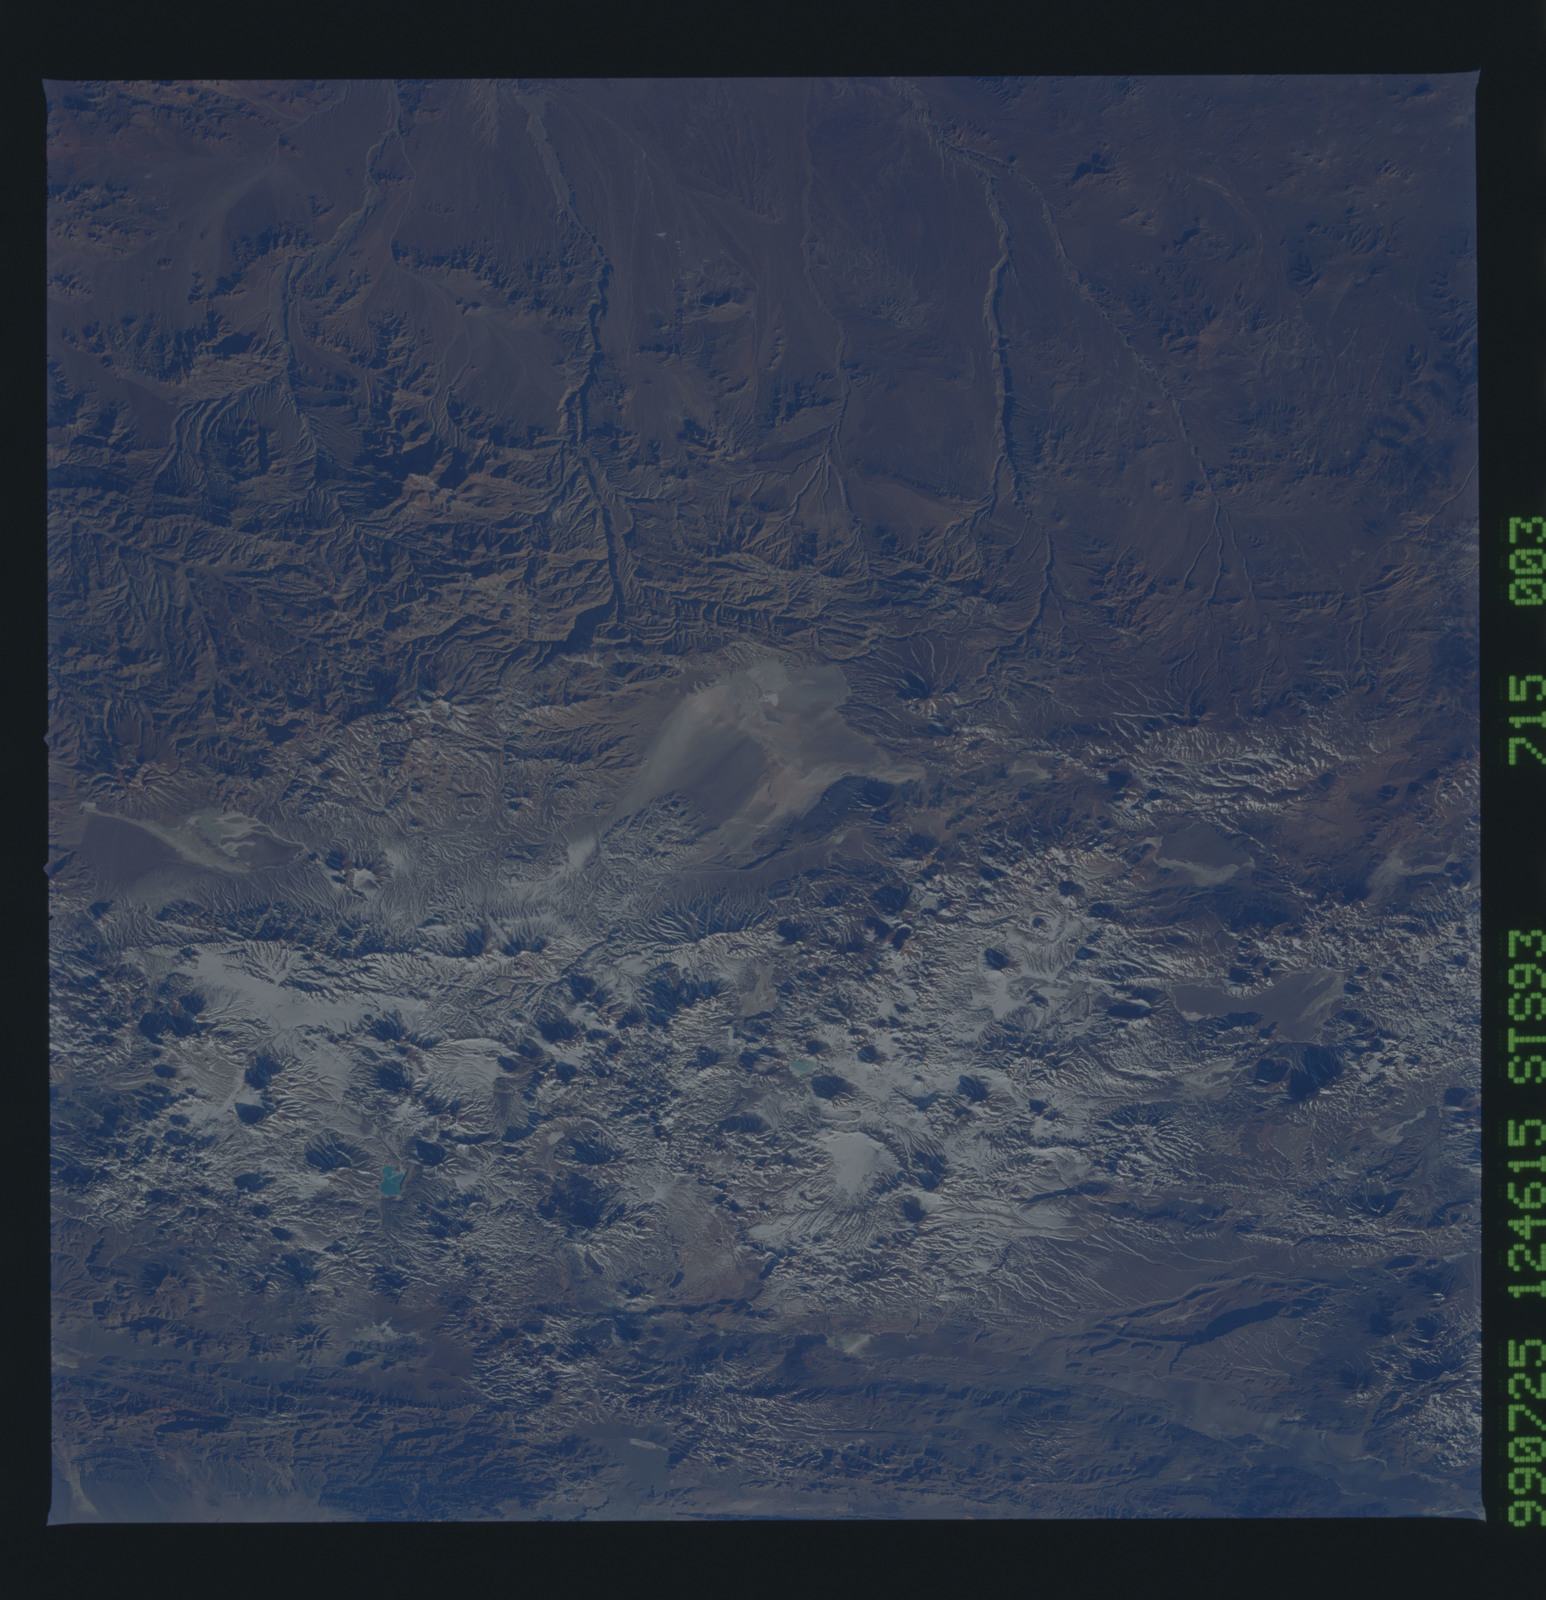 STS093-715-003 - STS-093 - Earth observations of the Andes Mts. taken from Columbia during STS-93 mission